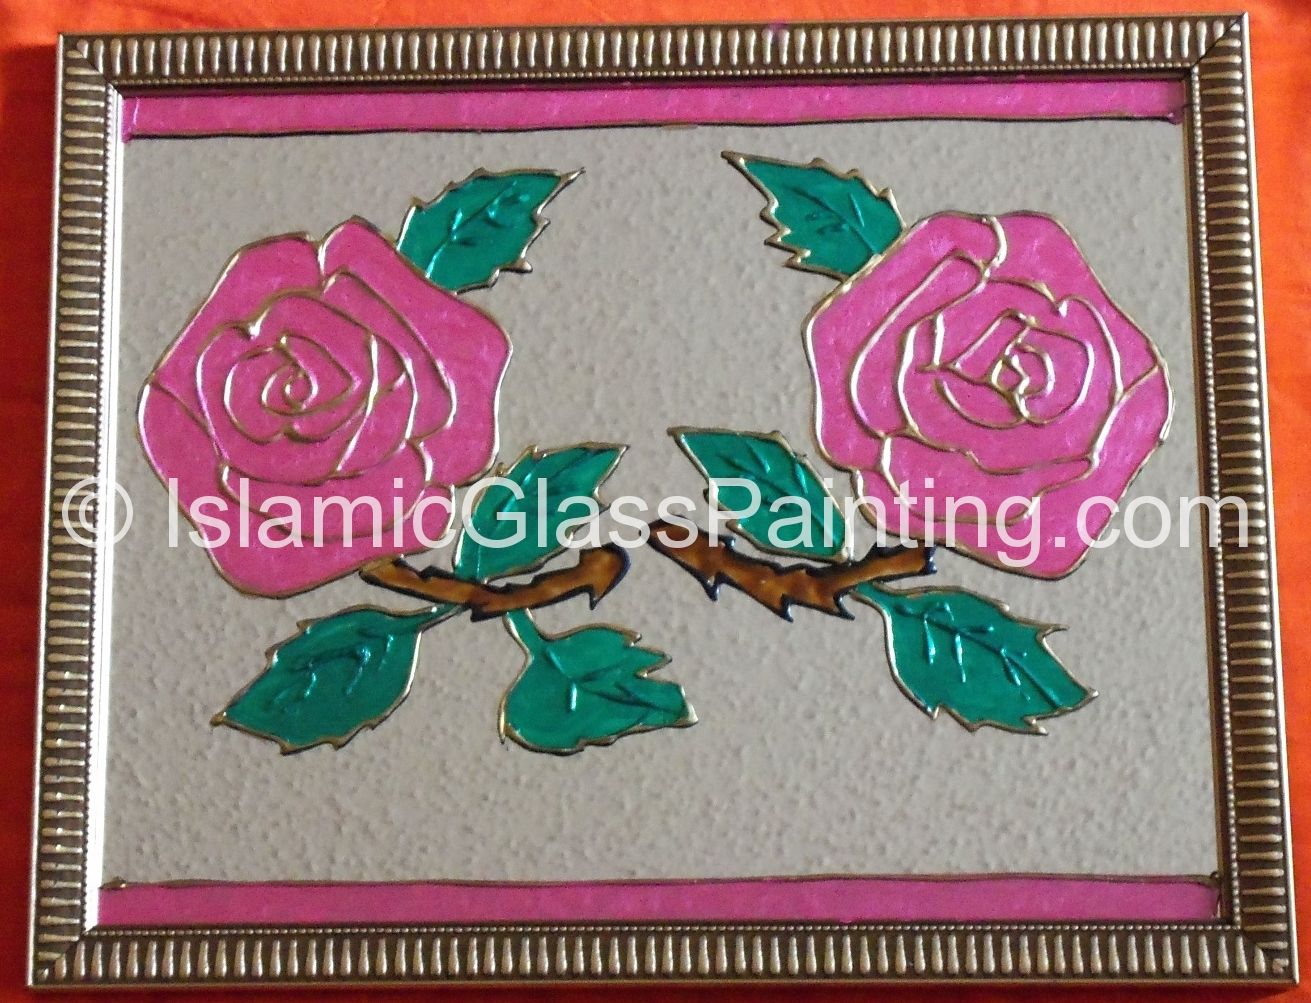 Surface mirror paint type glass gloss enamel design flower colors pink green brown frame thin border black with gold frame size 15 w by 12